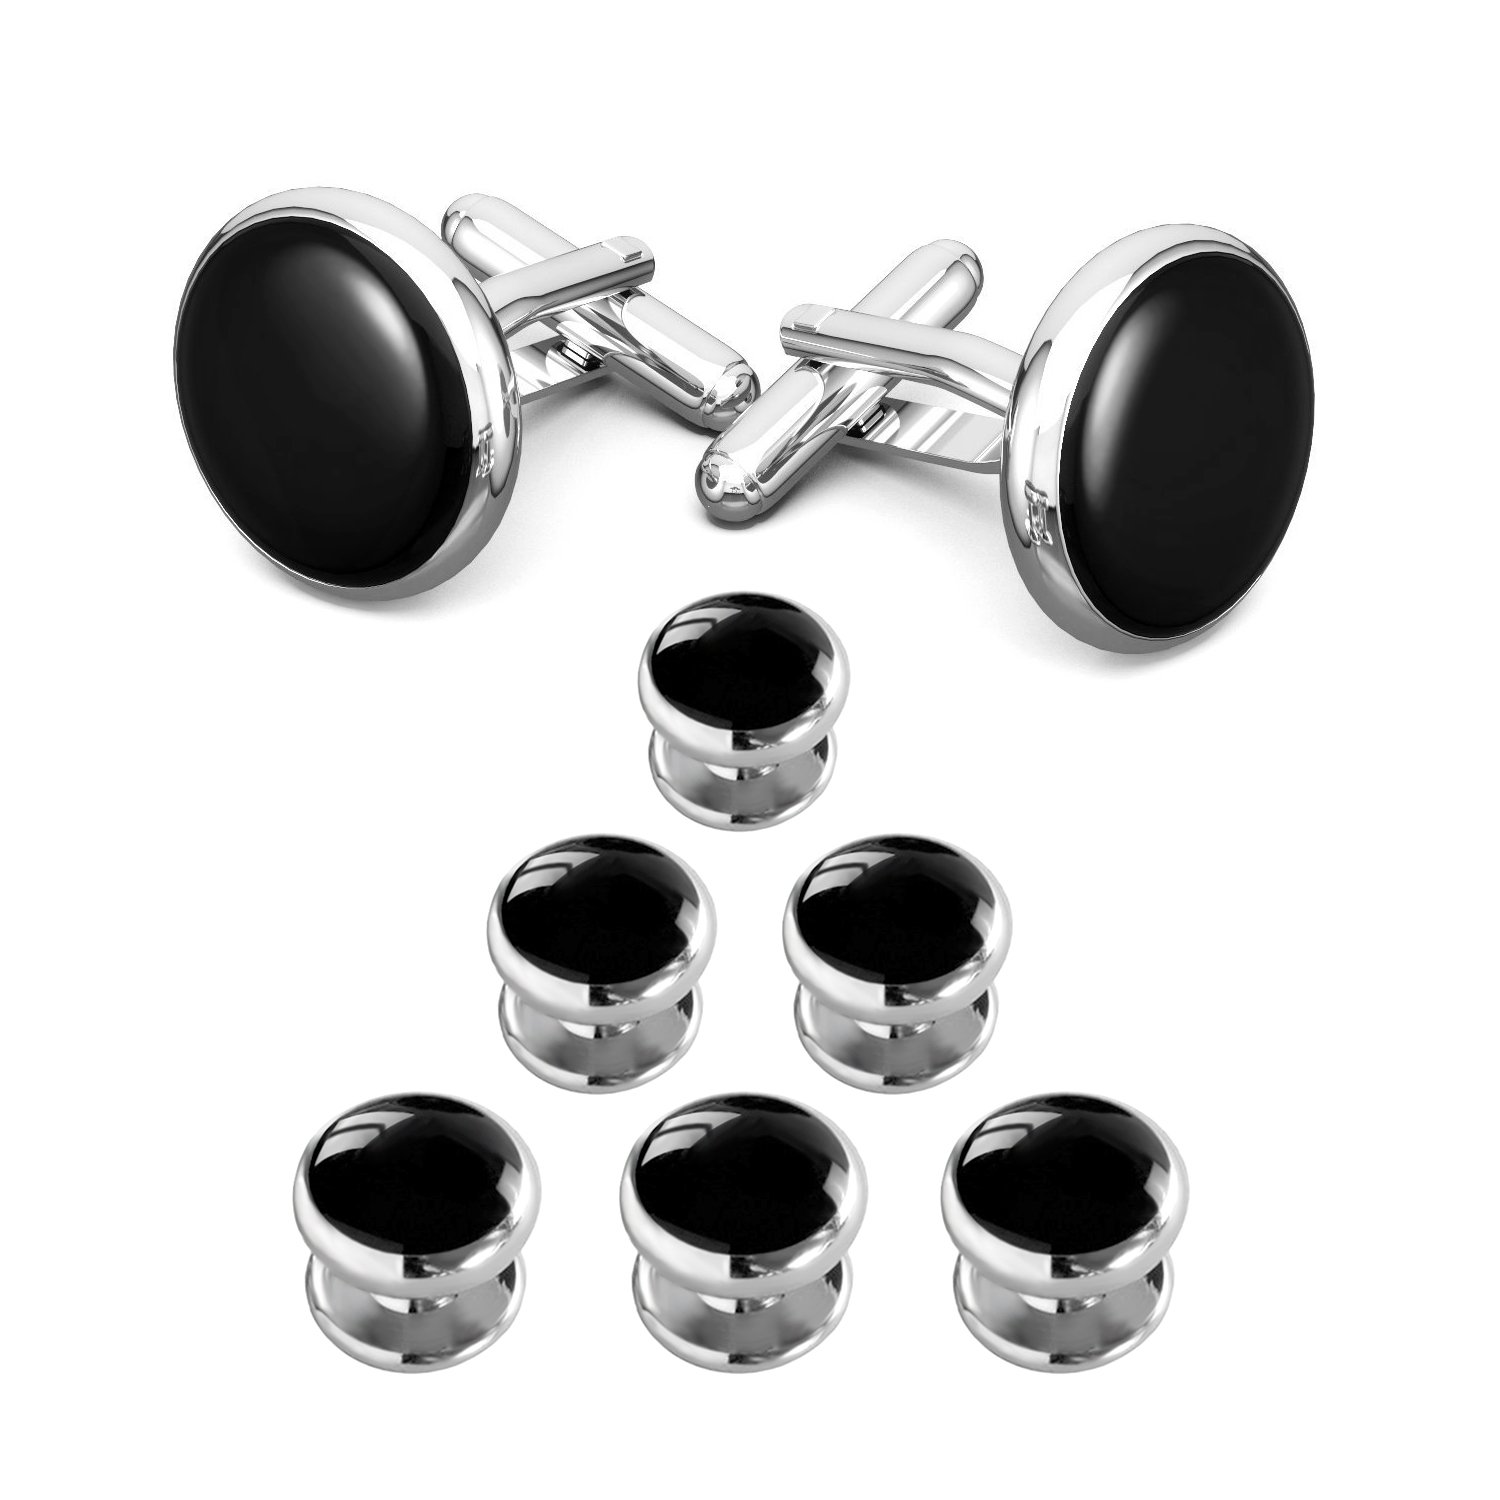 LIEBLICH Mens Black Round Tuxedo Shirts Cufflinks Button Studs Set Ideal Jewelry Gift Men (Style 1) NE008-P